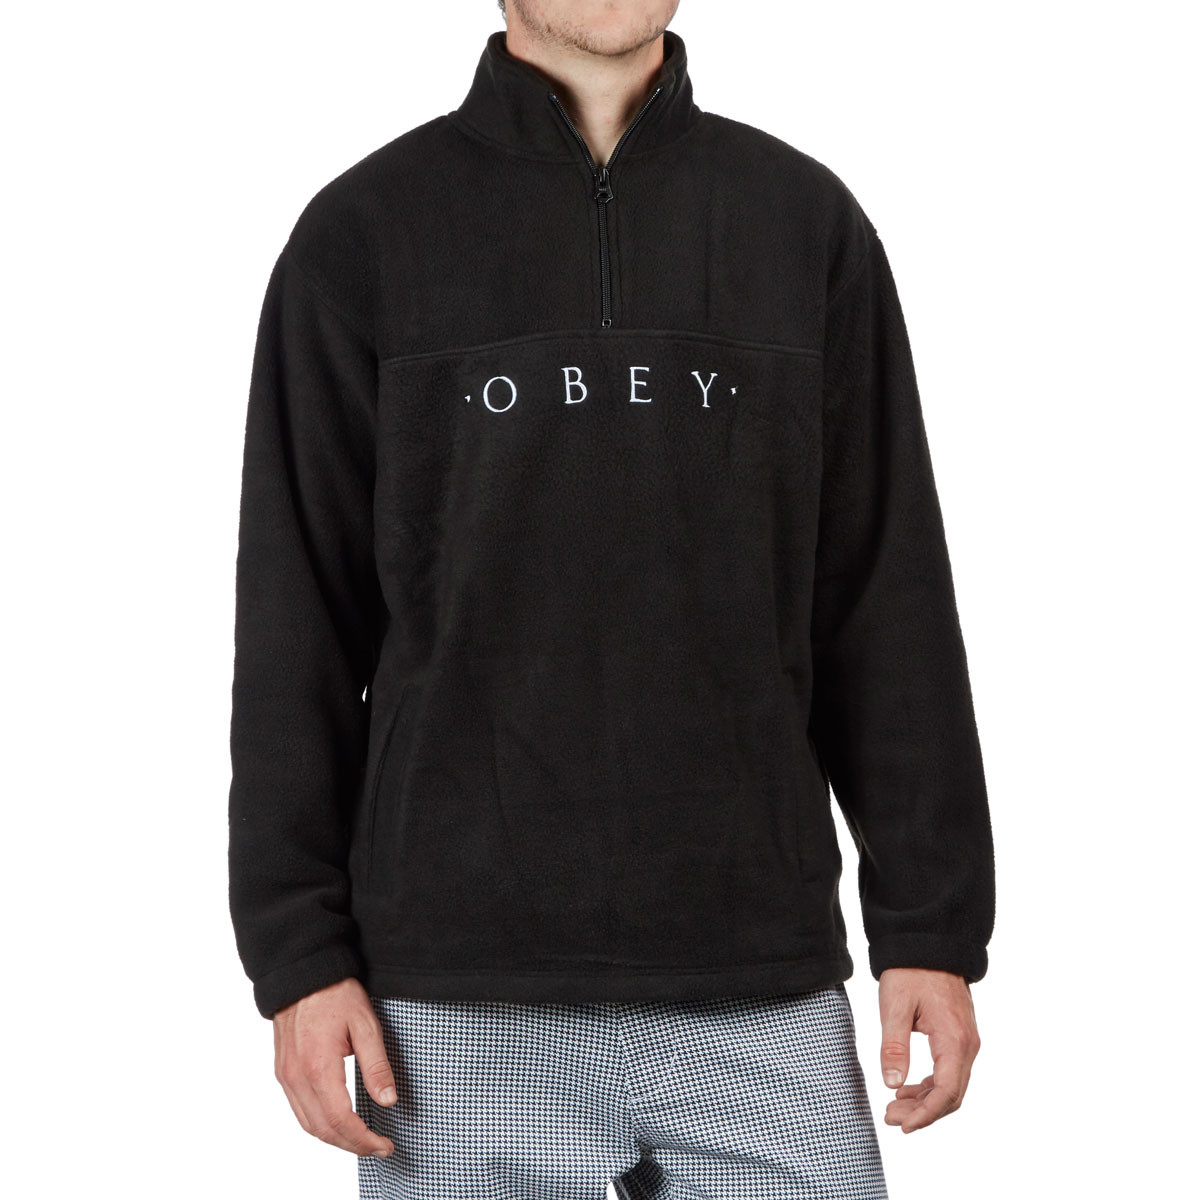 Obey Mountain Mock Zip Sweatshirt - Black f813345b4e29